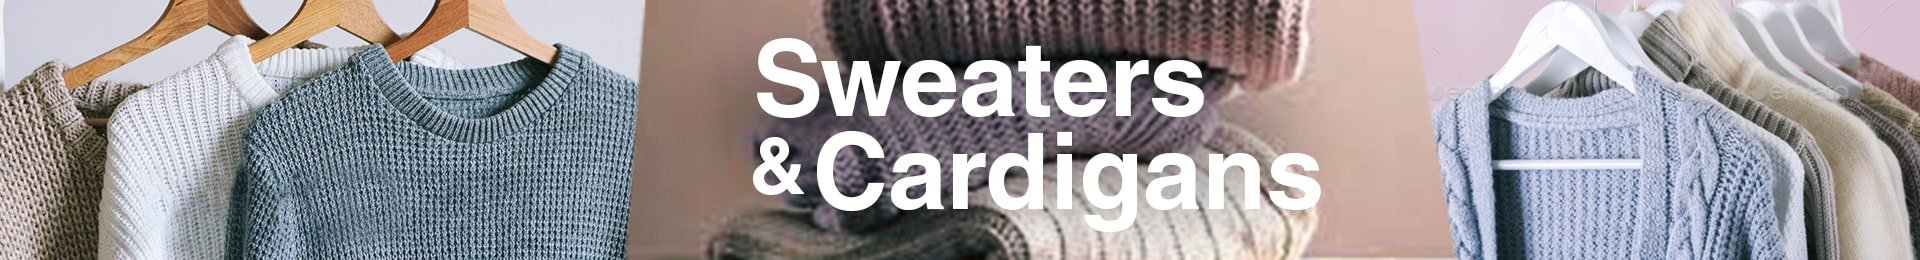 Wholesale Sweaters and Cardigans